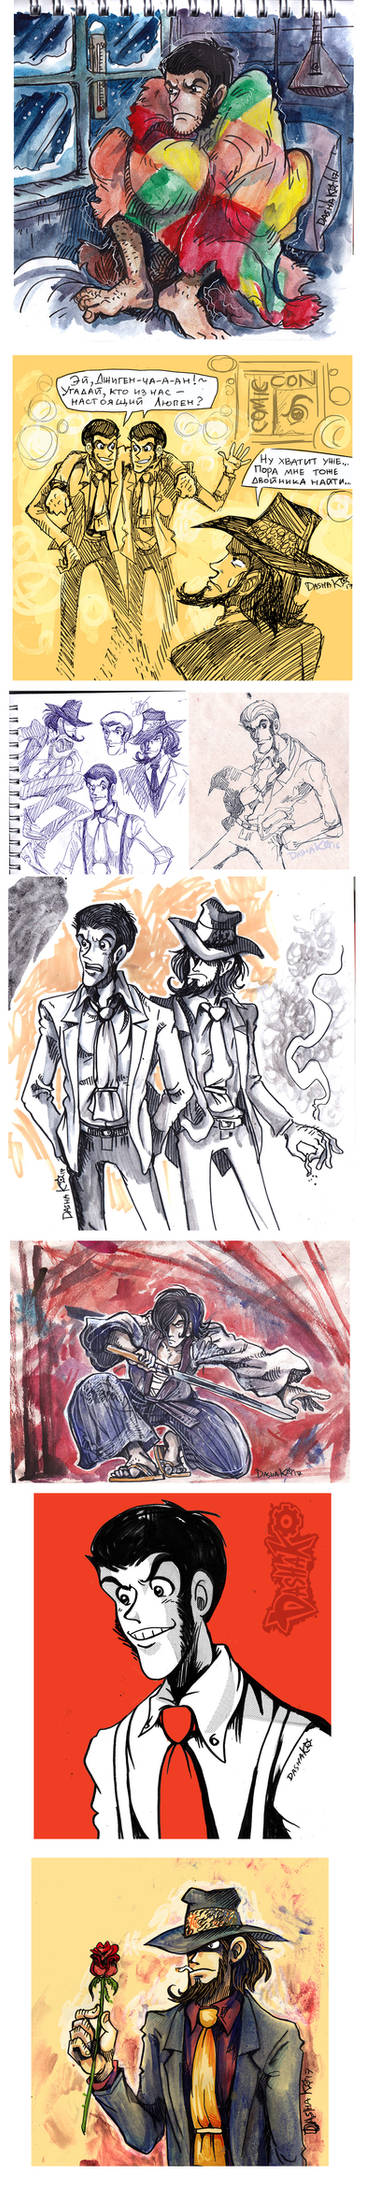 sketches46 Lupin